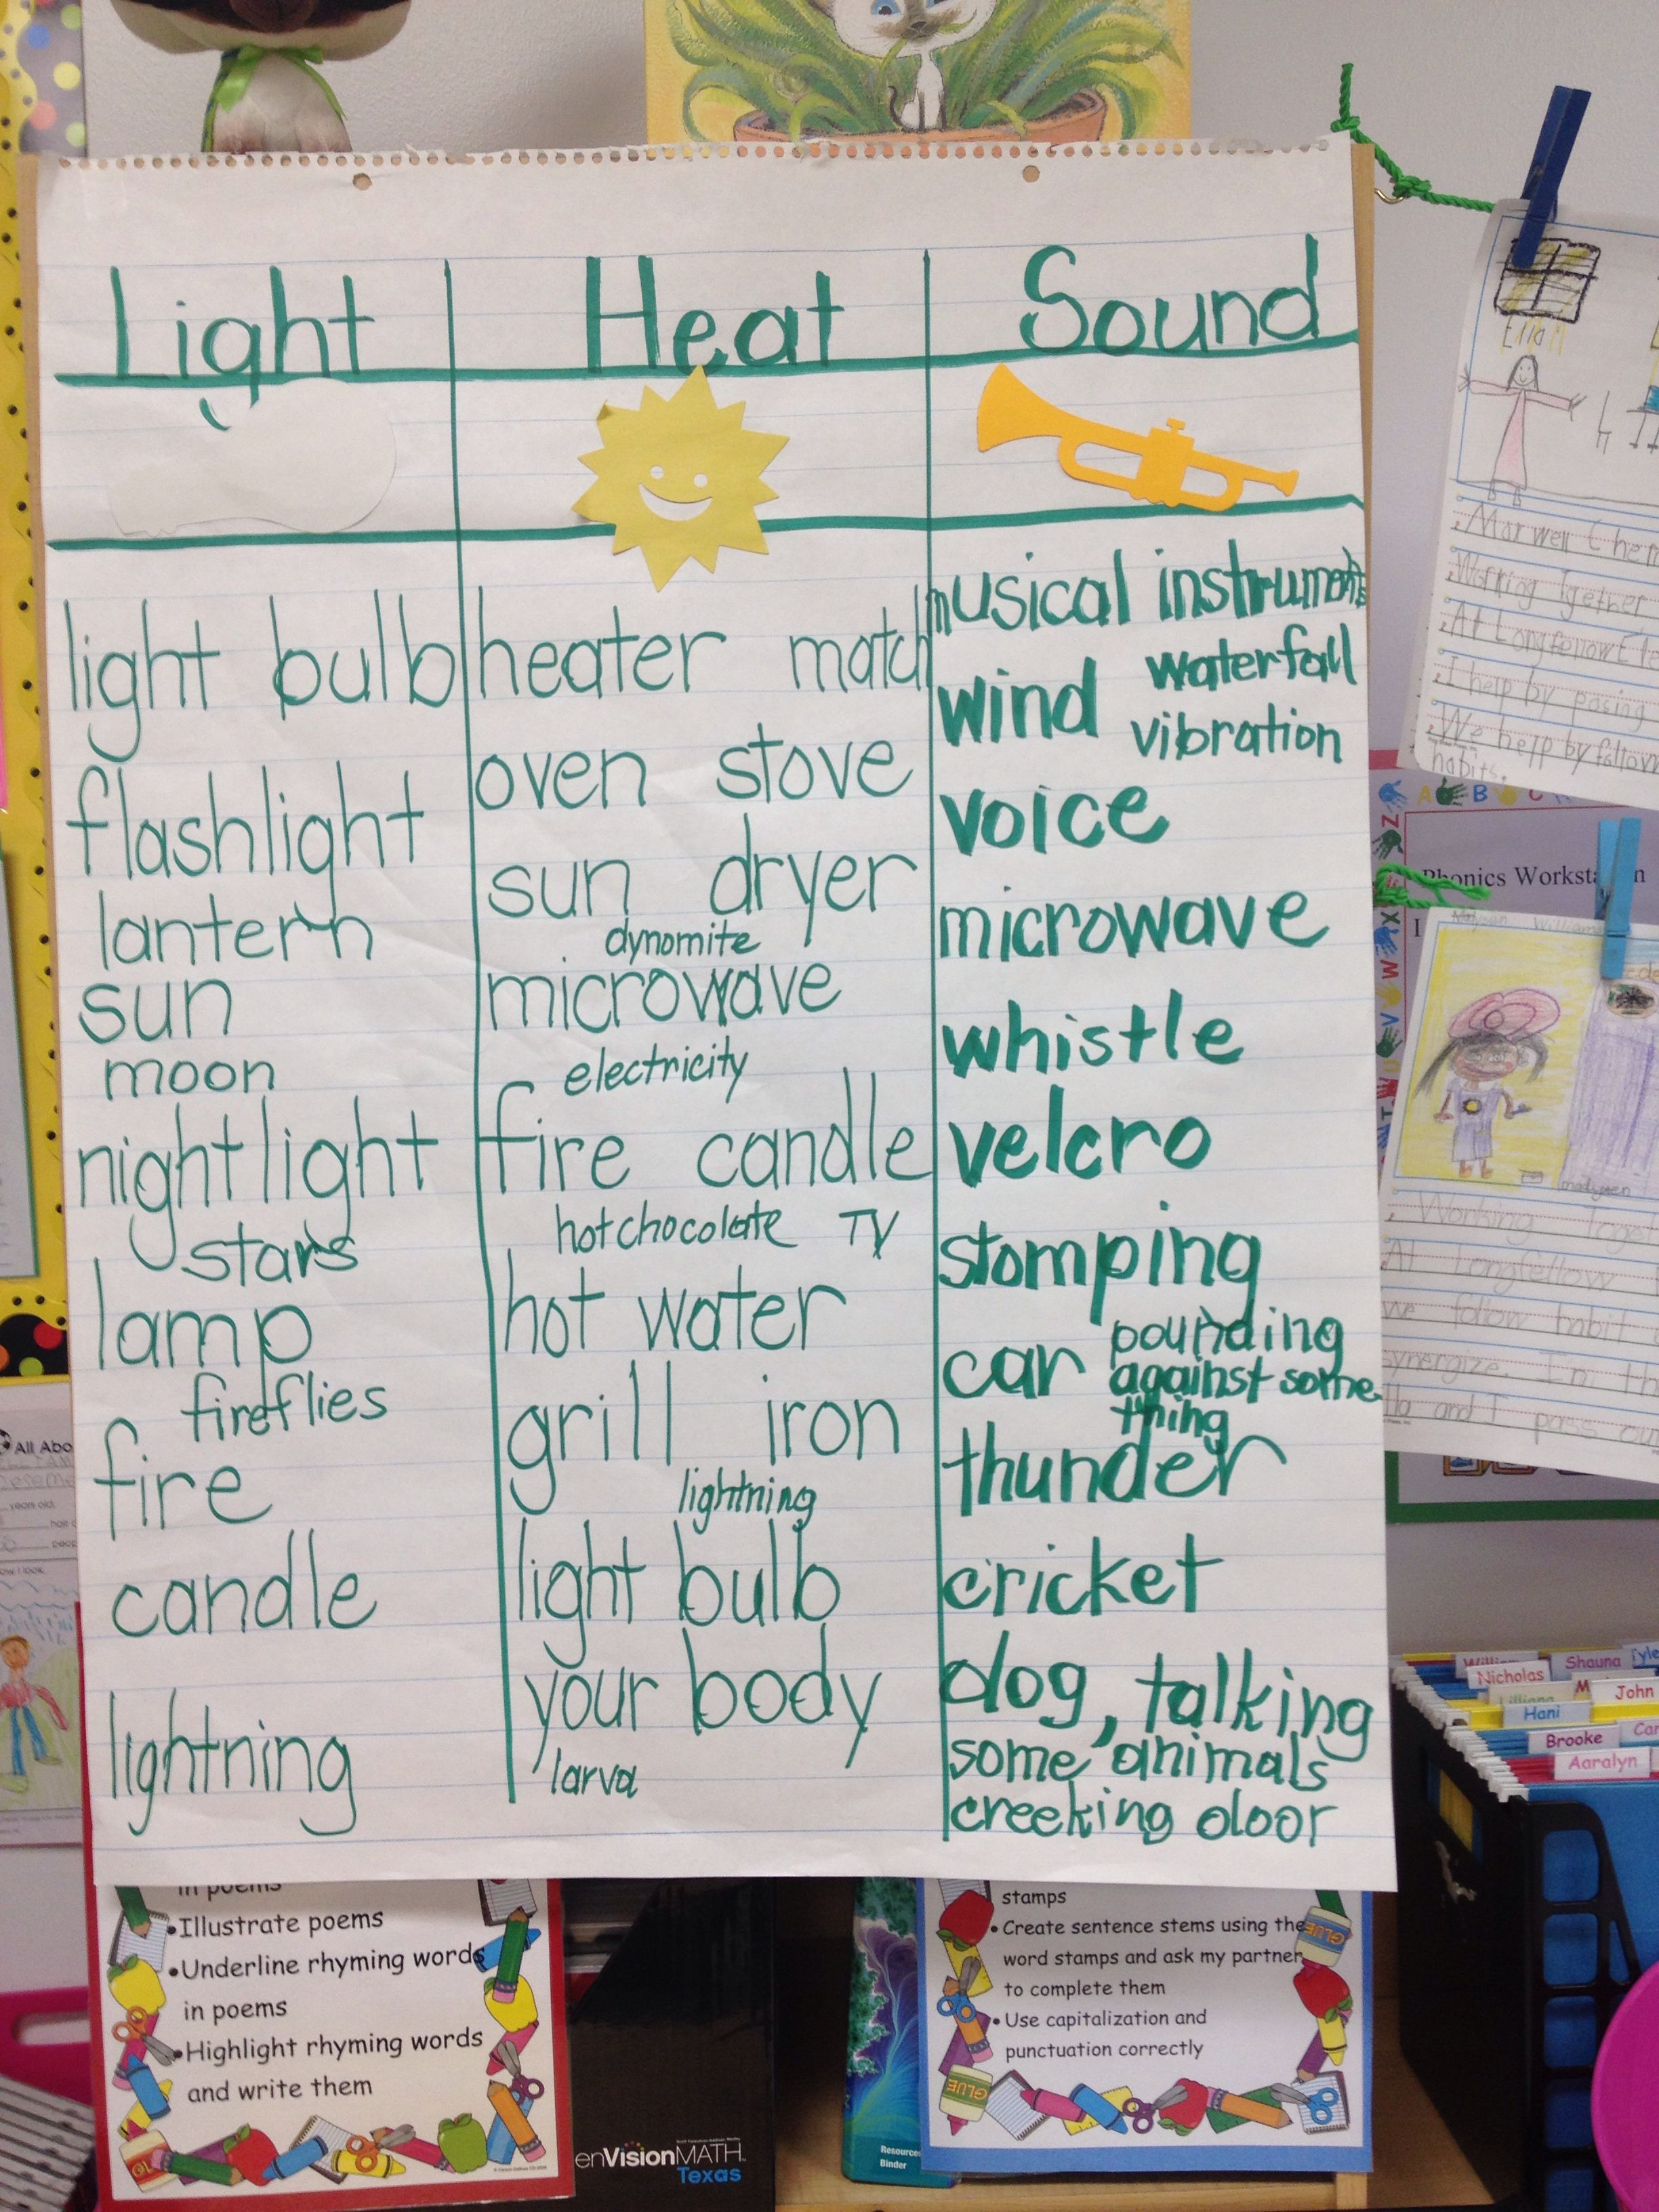 Science Heat Light Sound Physical Science First Grade Science Math Fact Worksheets [ 3264 x 2448 Pixel ]